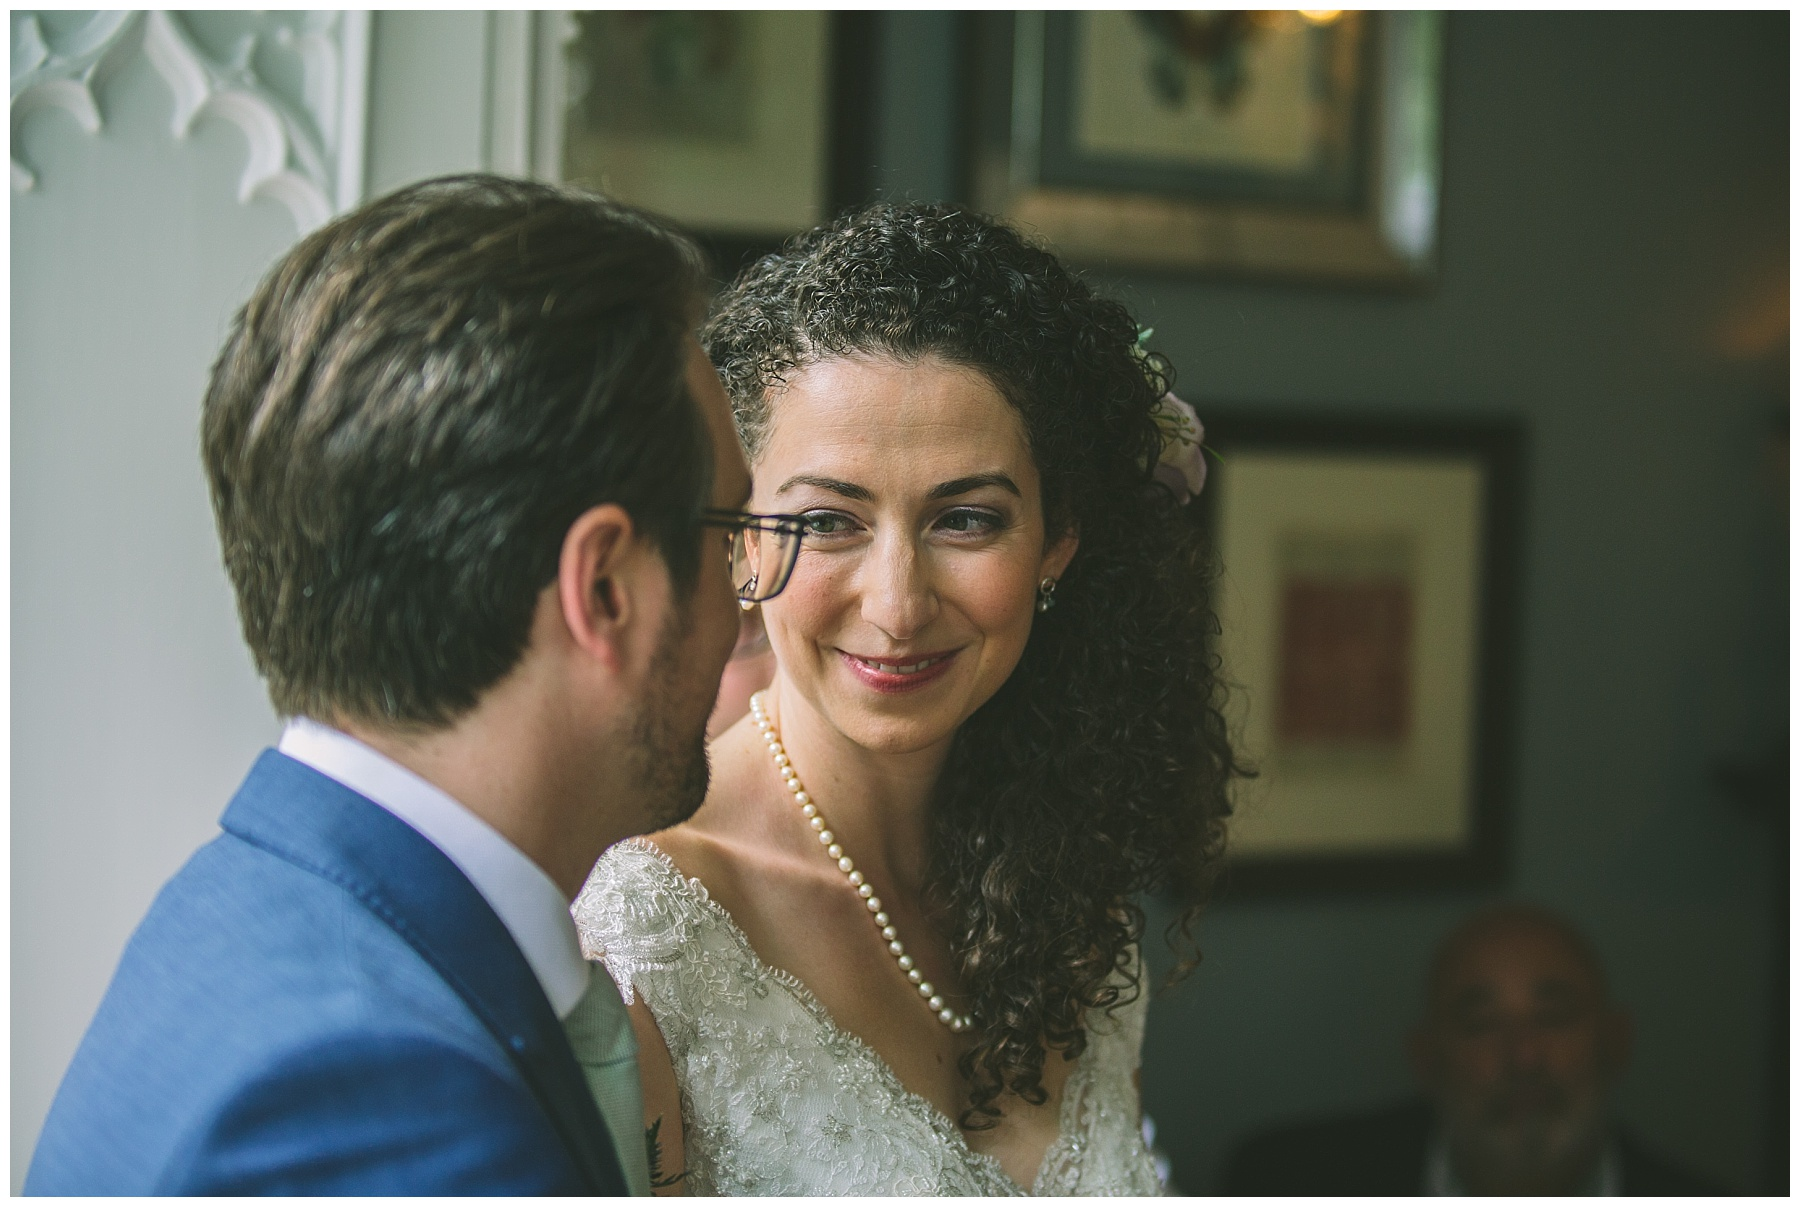 bride and groom exchange a look during the ceremony at Didsbury House